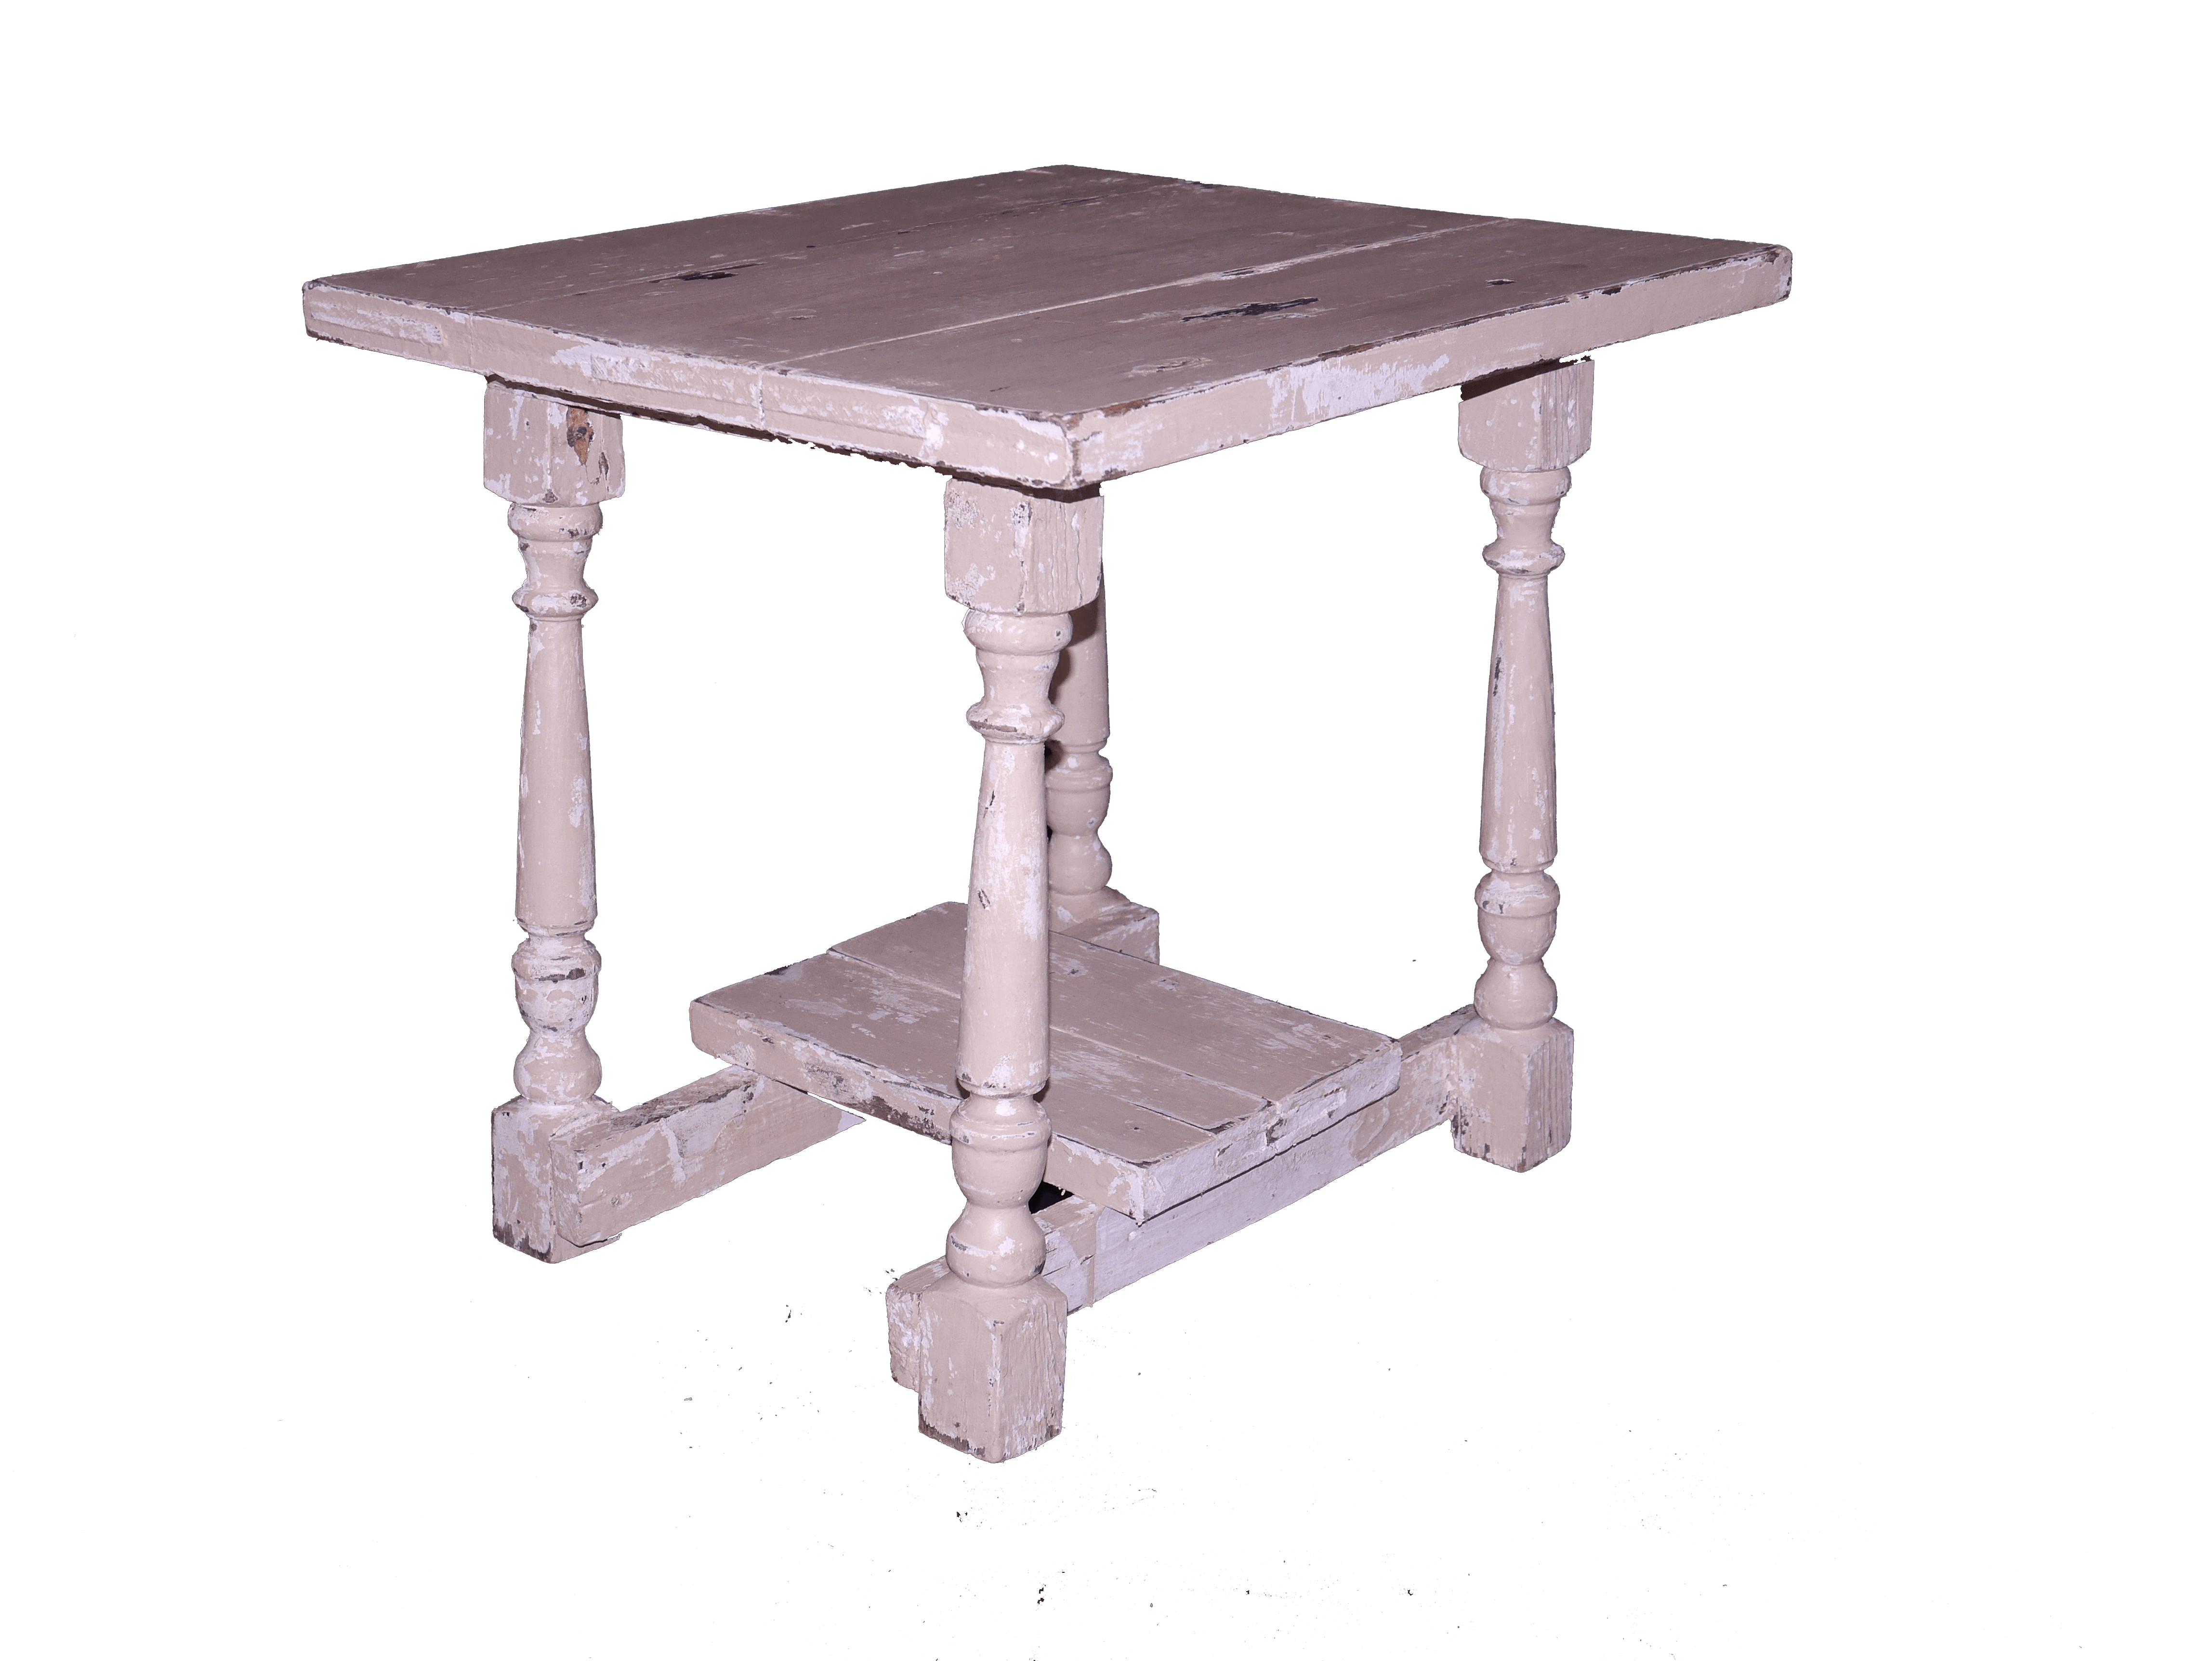 ivory distressed end table tables amish built bedroom furniture free side plans brass and glass bedside round stackable split log coffee legends urban loft best dining designs